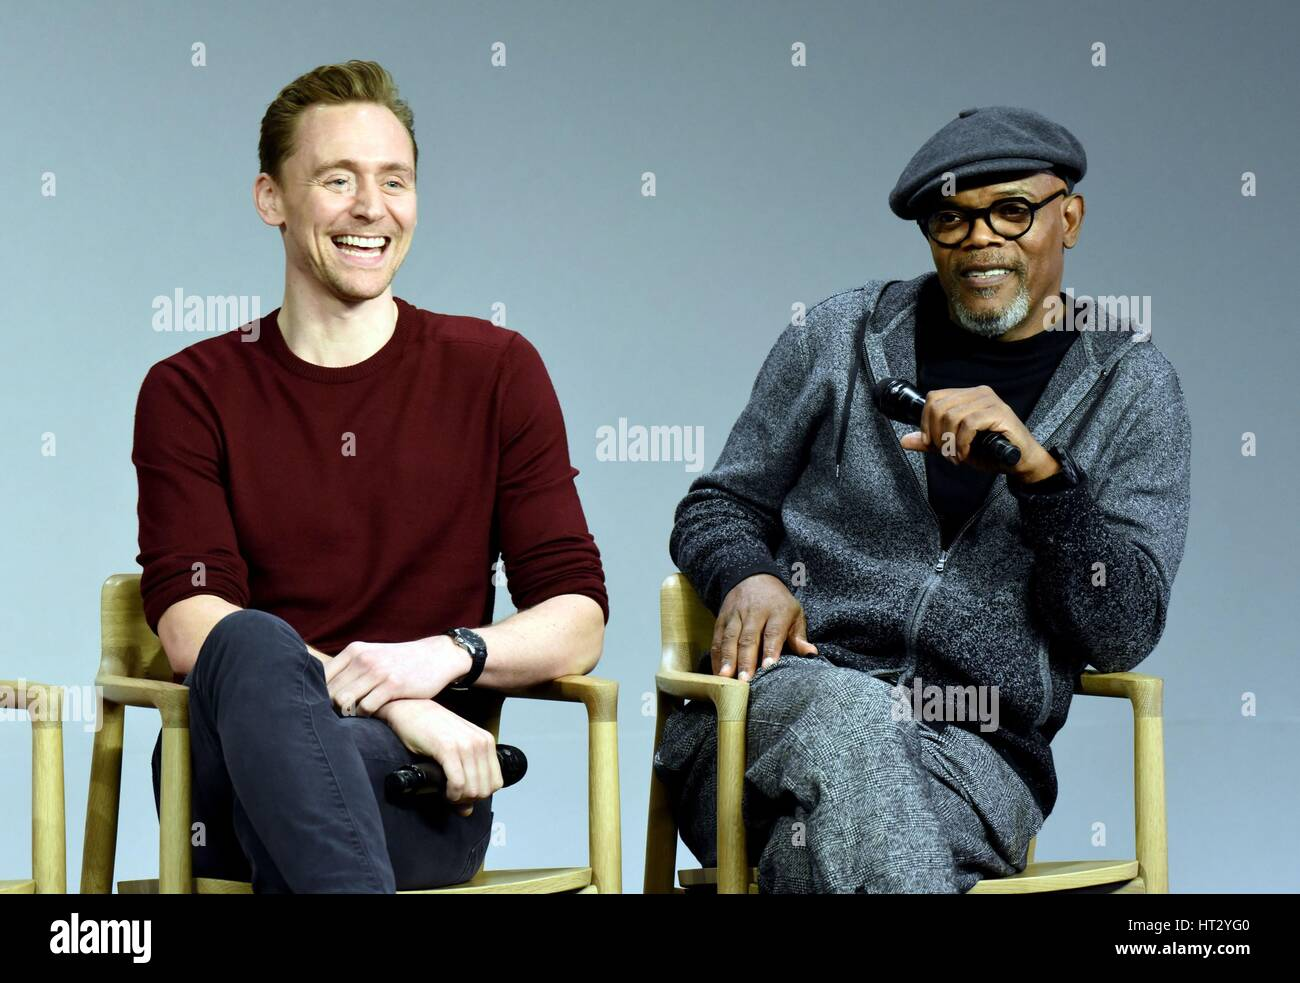 New york ny usa 6th mar 2017 tom hiddleston samuel l jackson tom hiddleston samuel l jackson at in store appearance for meet the cast kong skull island the apple store soho new york ny march 6 2017 m4hsunfo